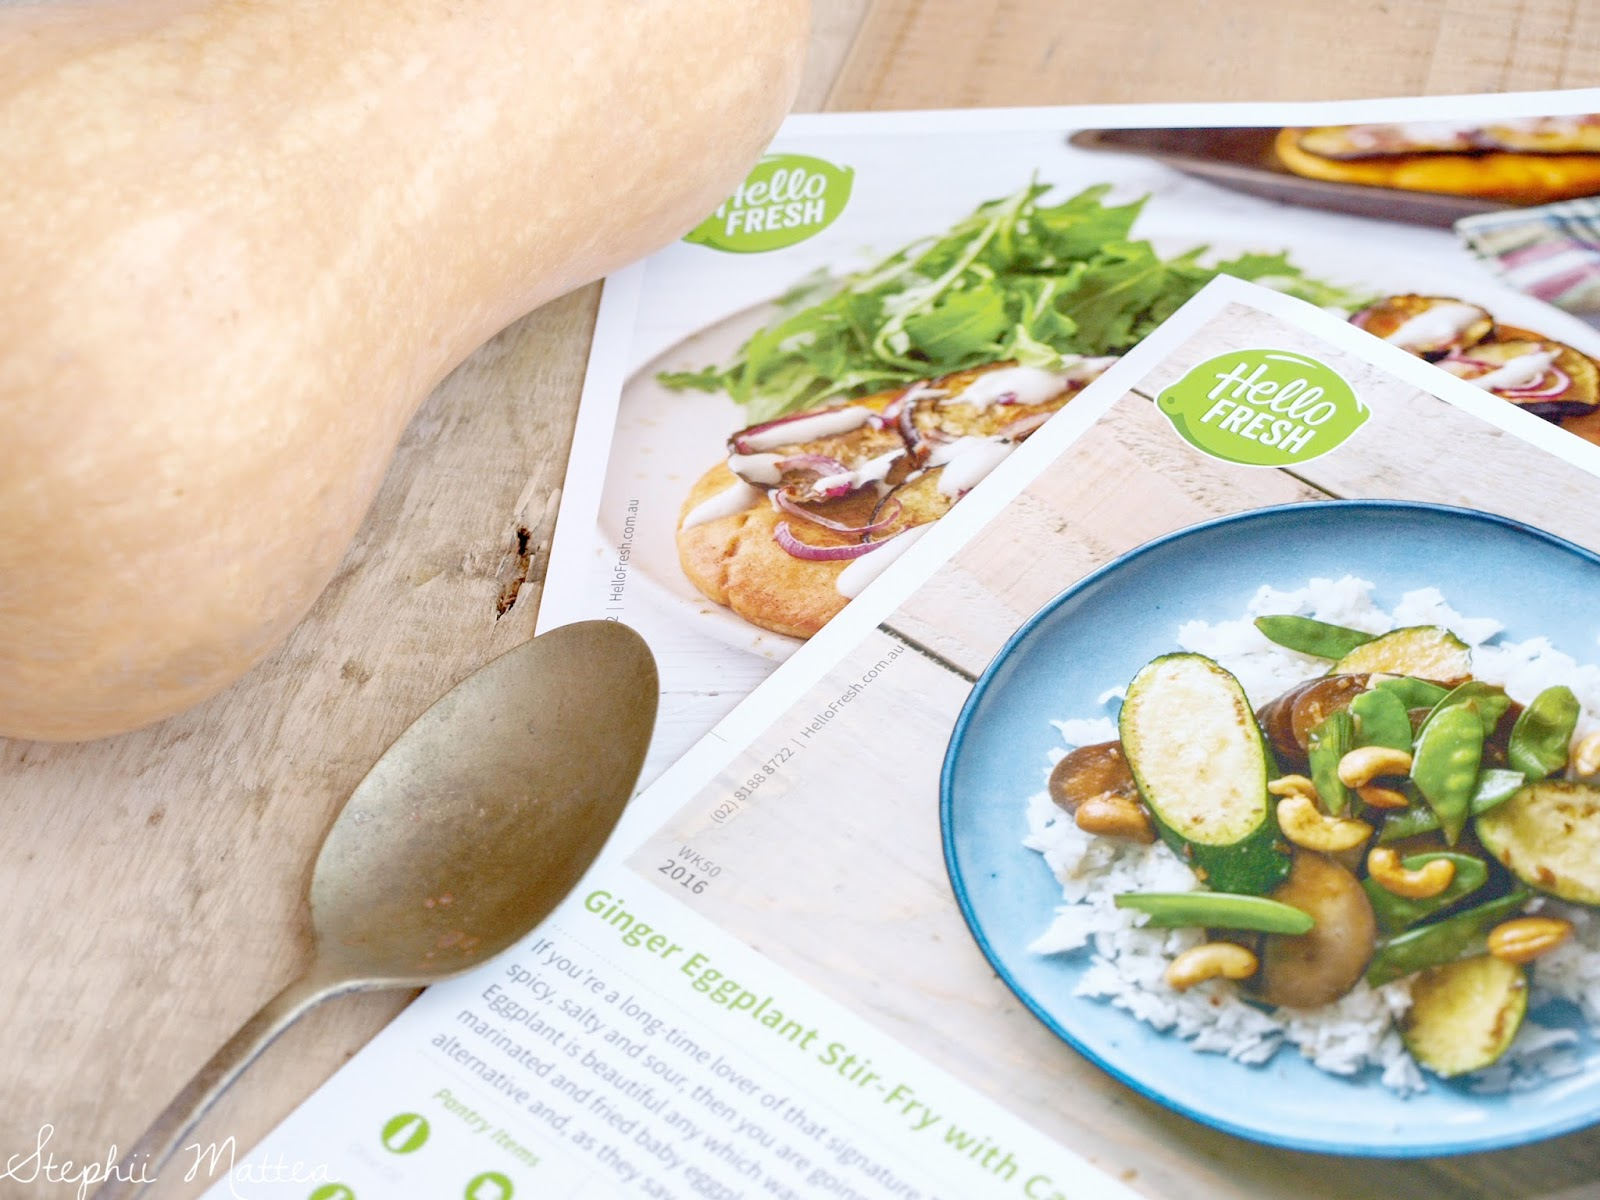 Company Website Meal Kit Delivery Service  Hellofresh